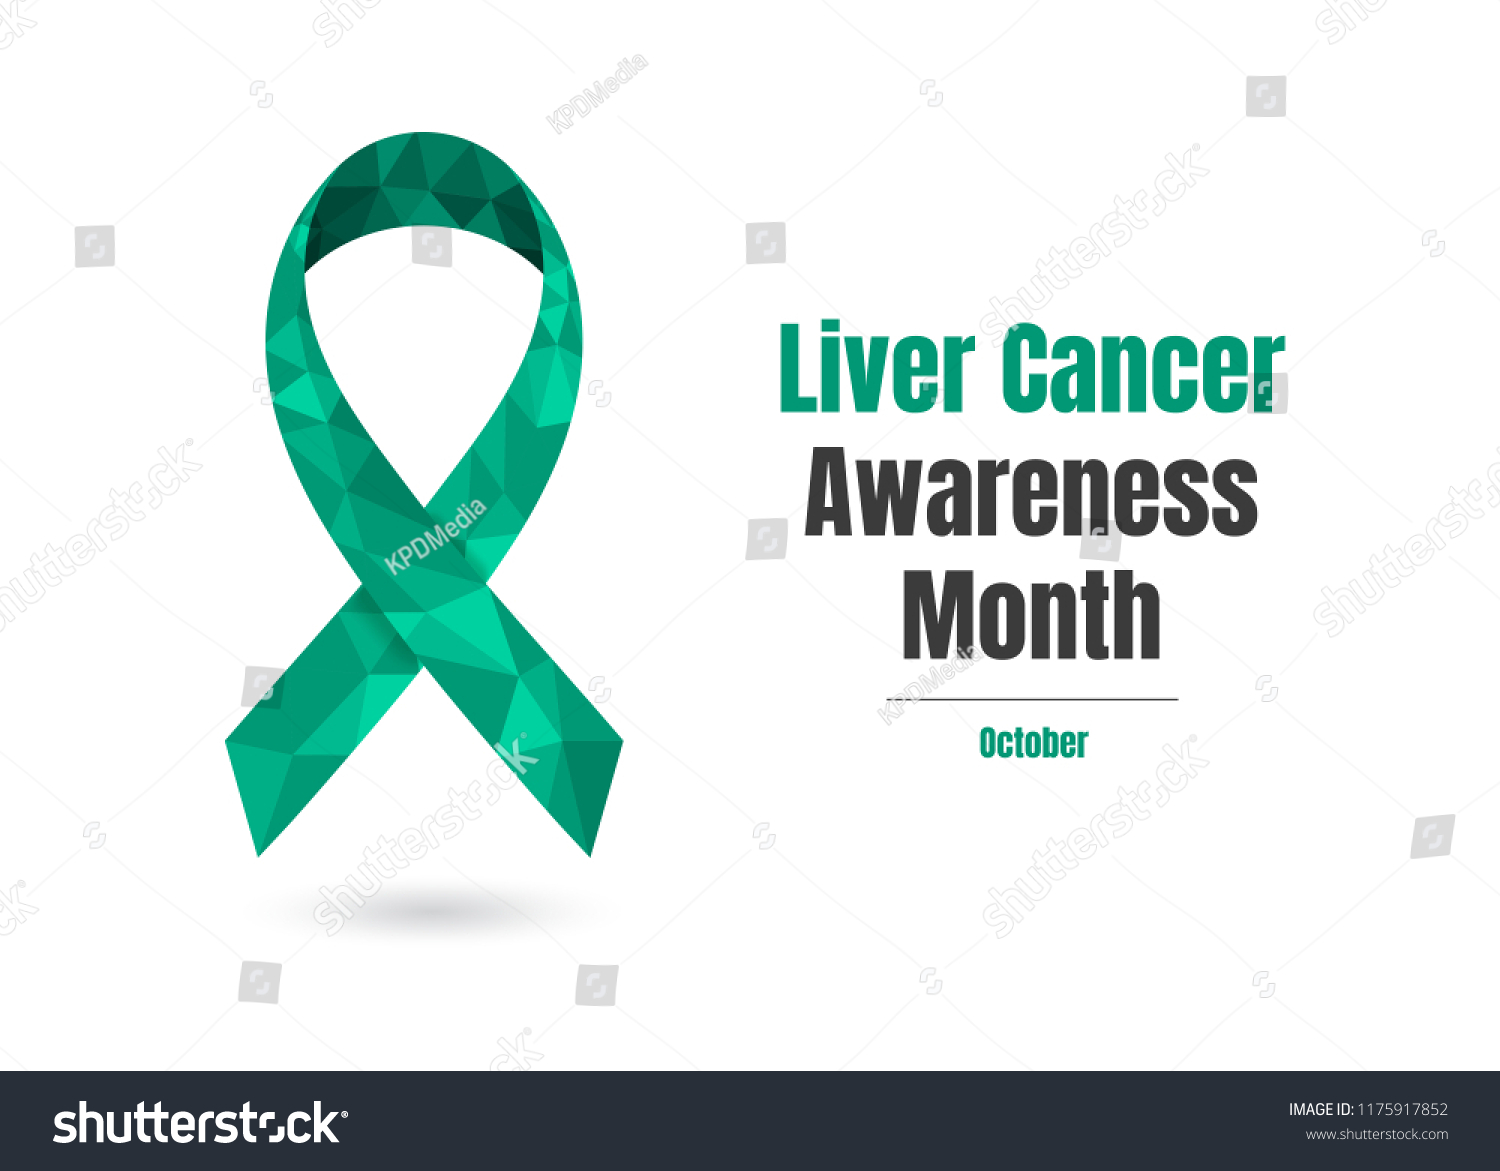 Liver Cancer Awareness Month October Concept Stock Vector Royalty